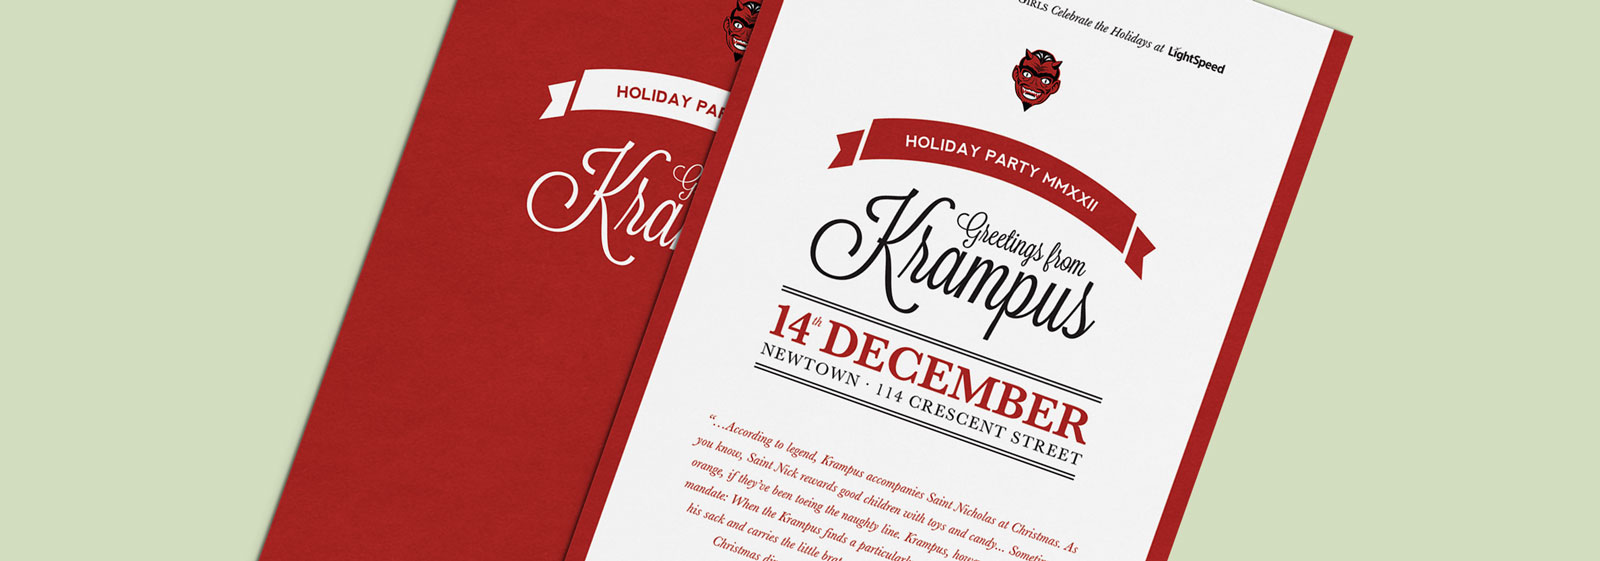 Krampus Holiday Party Invitation Design